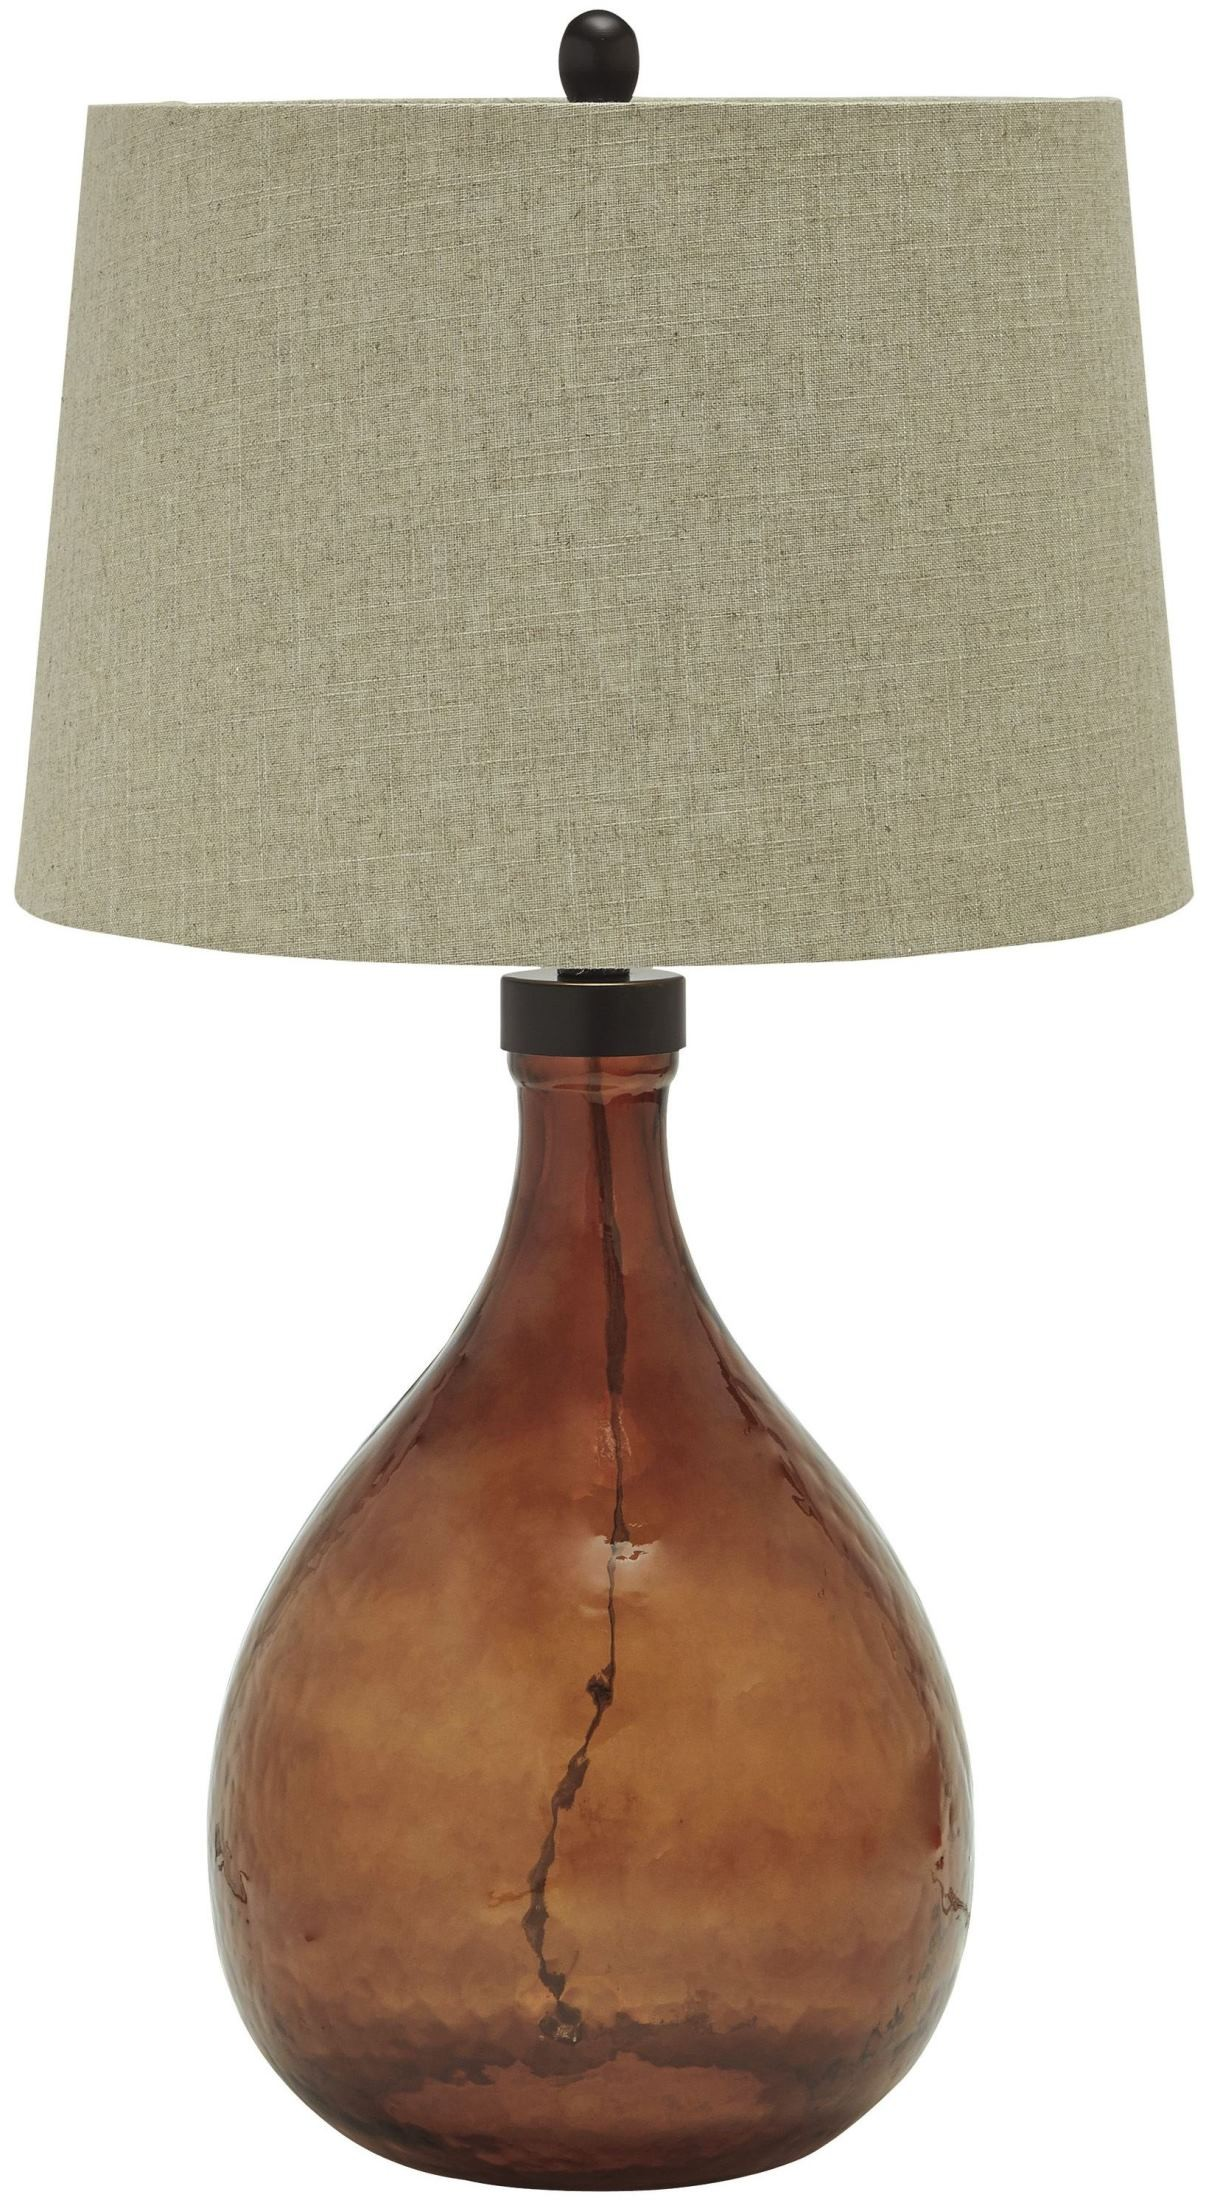 Arayna Brown Glass Table Lamp, L430344, Ashley